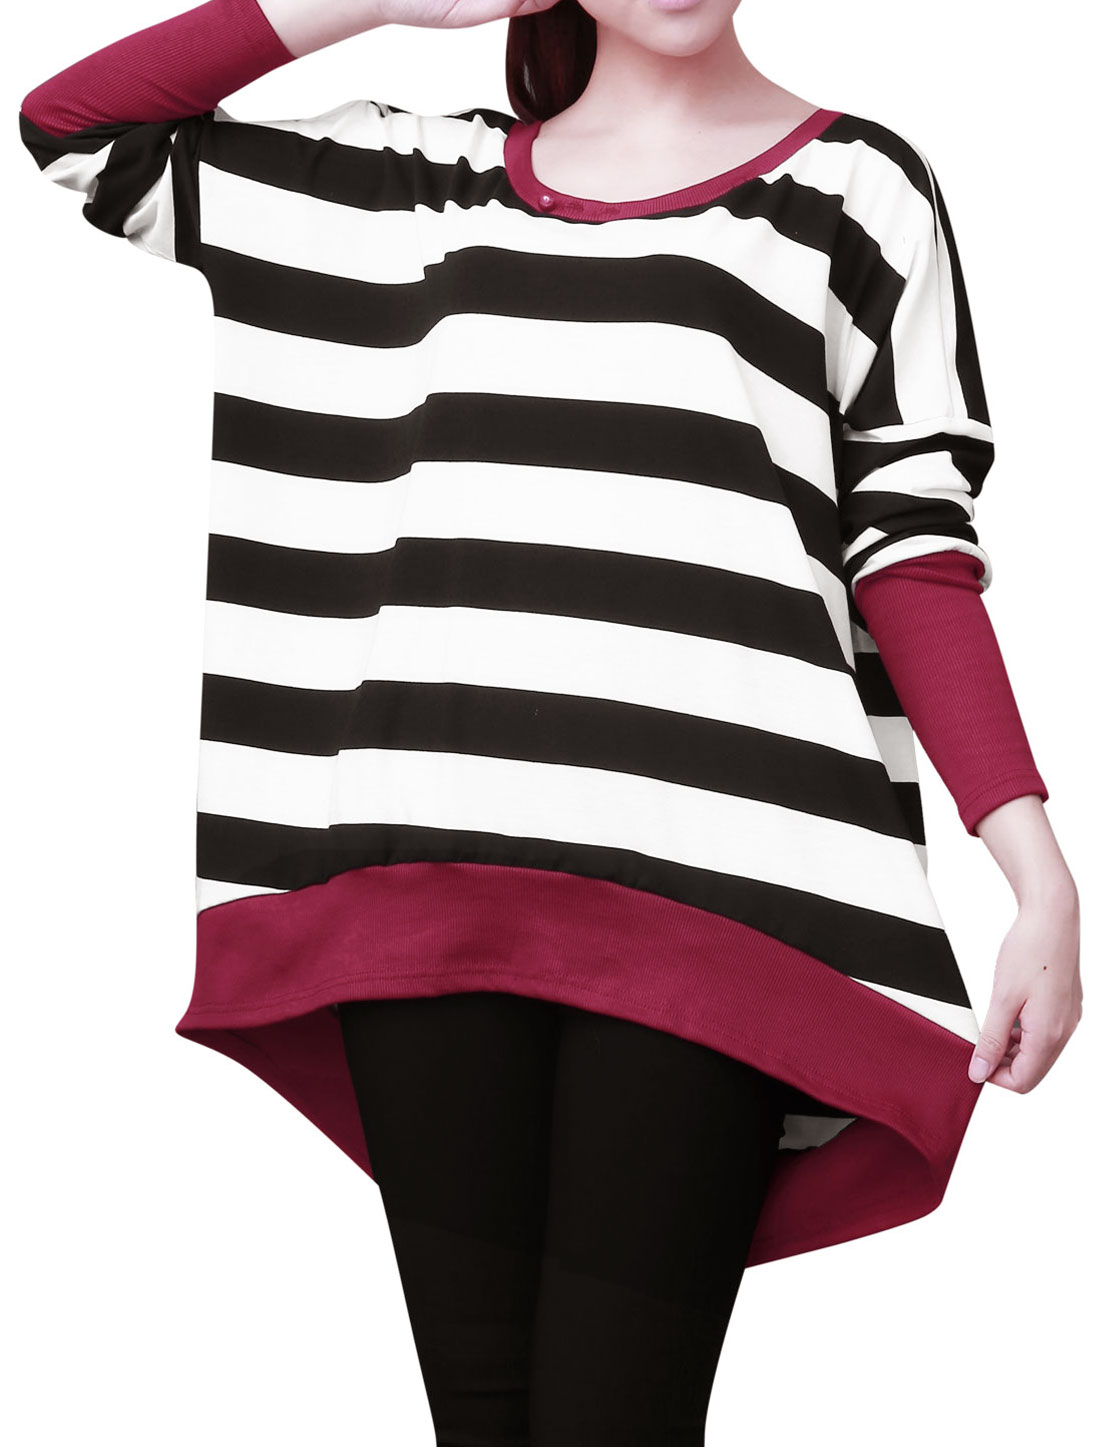 Ladies Chci Boat Neck Long Batwing Sleeve Black White Tops XS